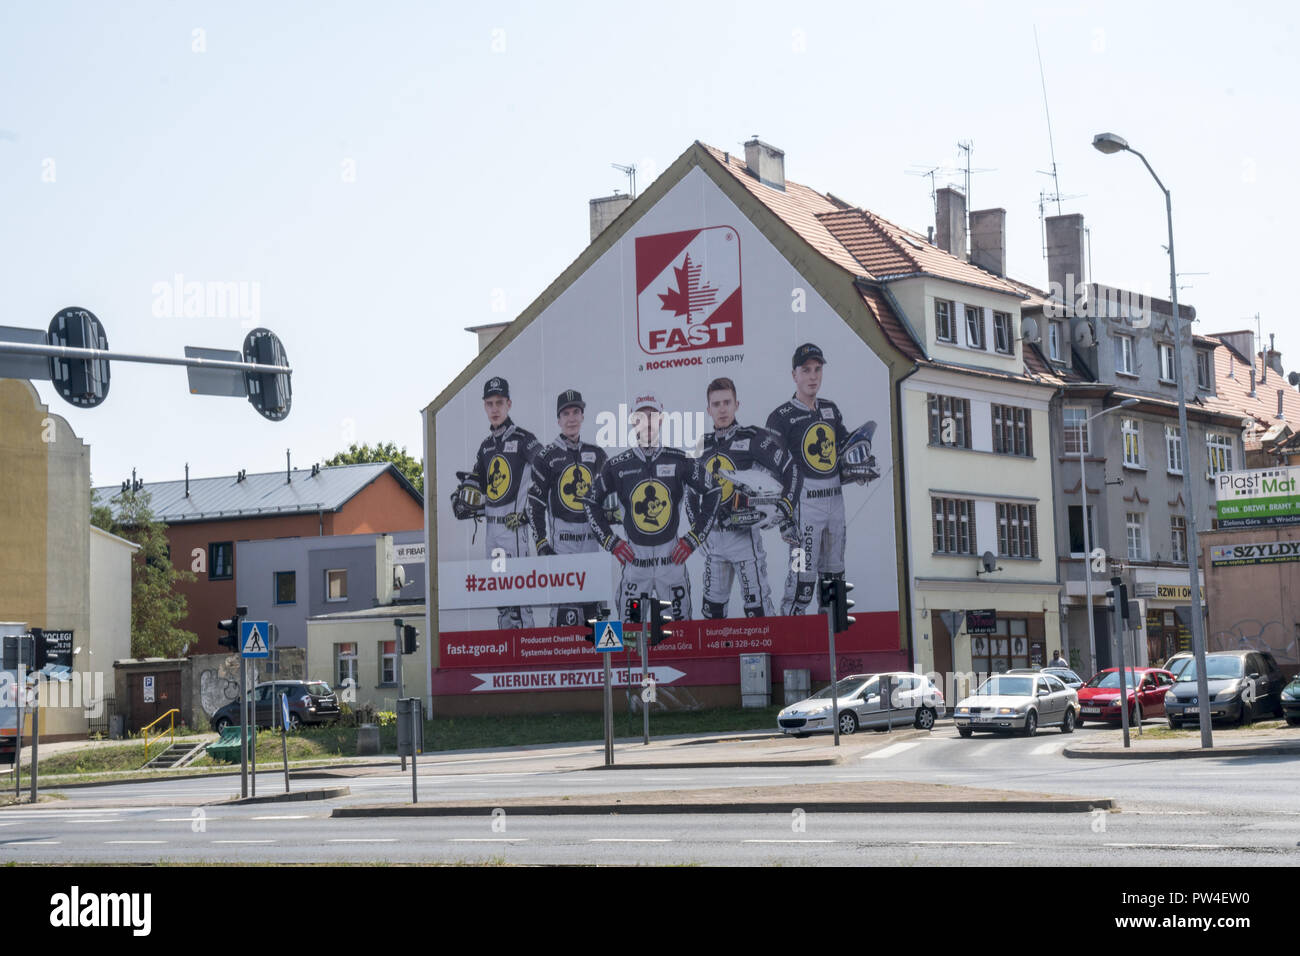 Famous Speedway motorcycle racers on a billboard ad on a building in Zielona Gora, Poland. Speedway racing is a very popular sport in Poland. - Stock Image